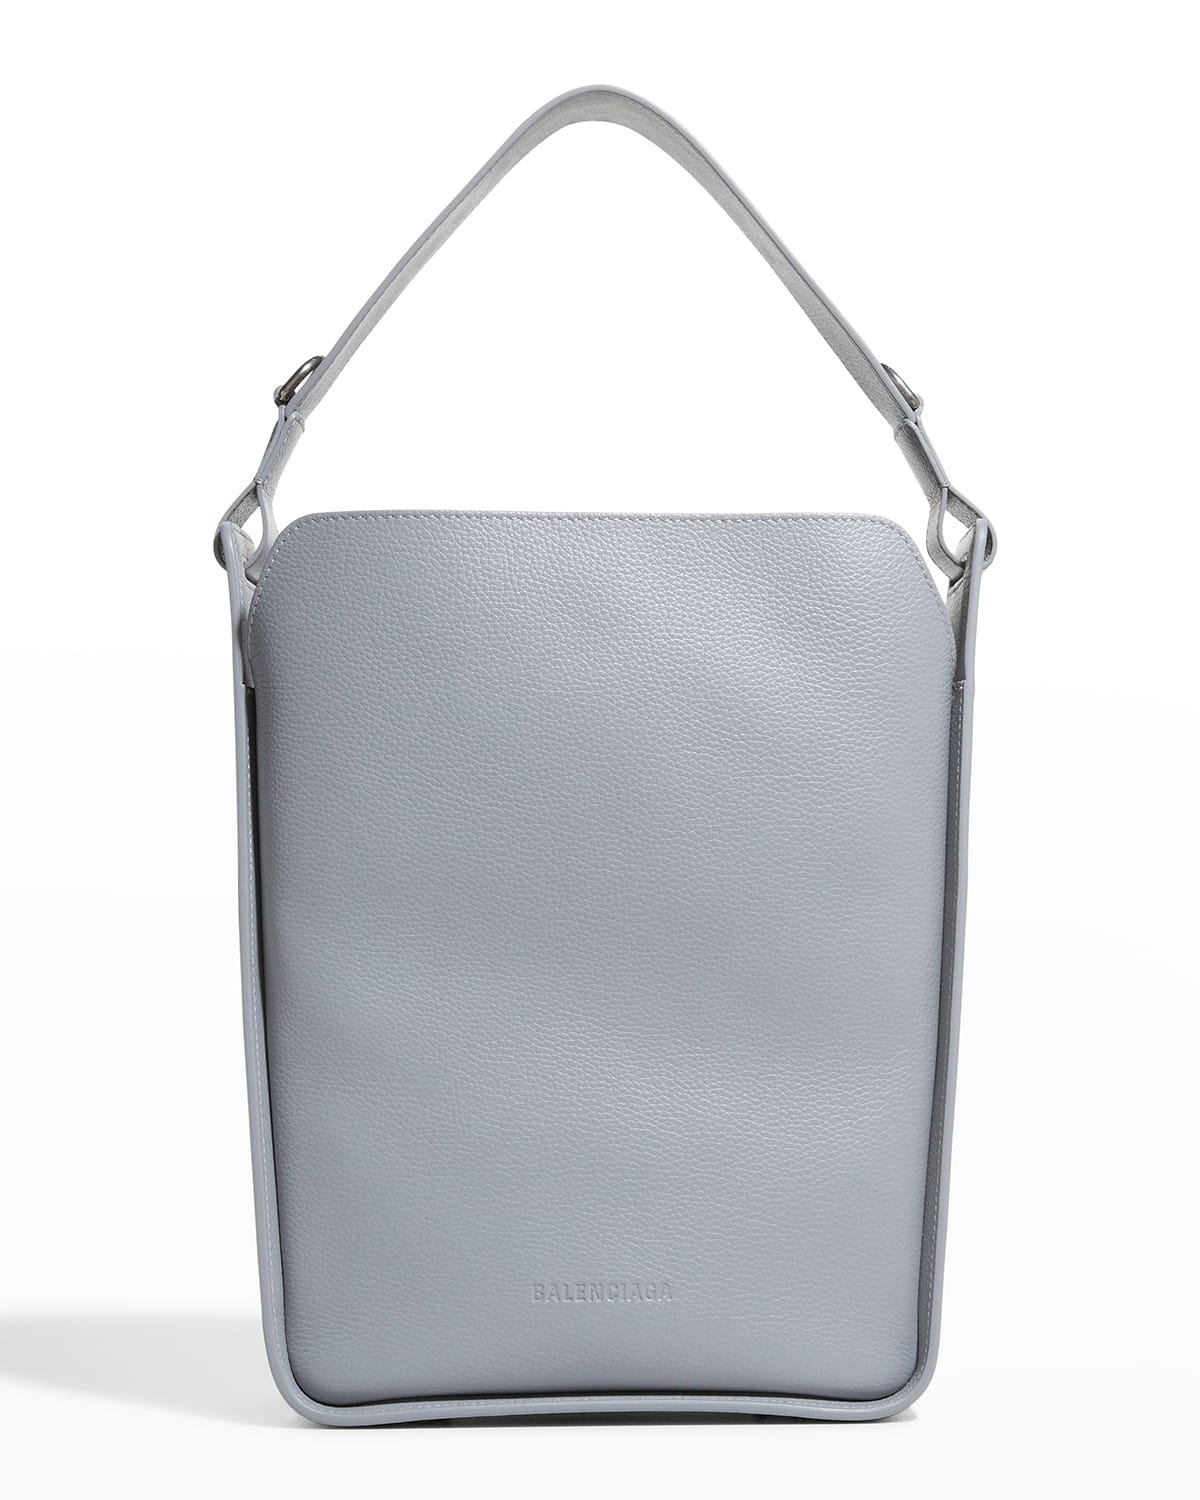 North-South Grained Leather Hobo Tote Bag